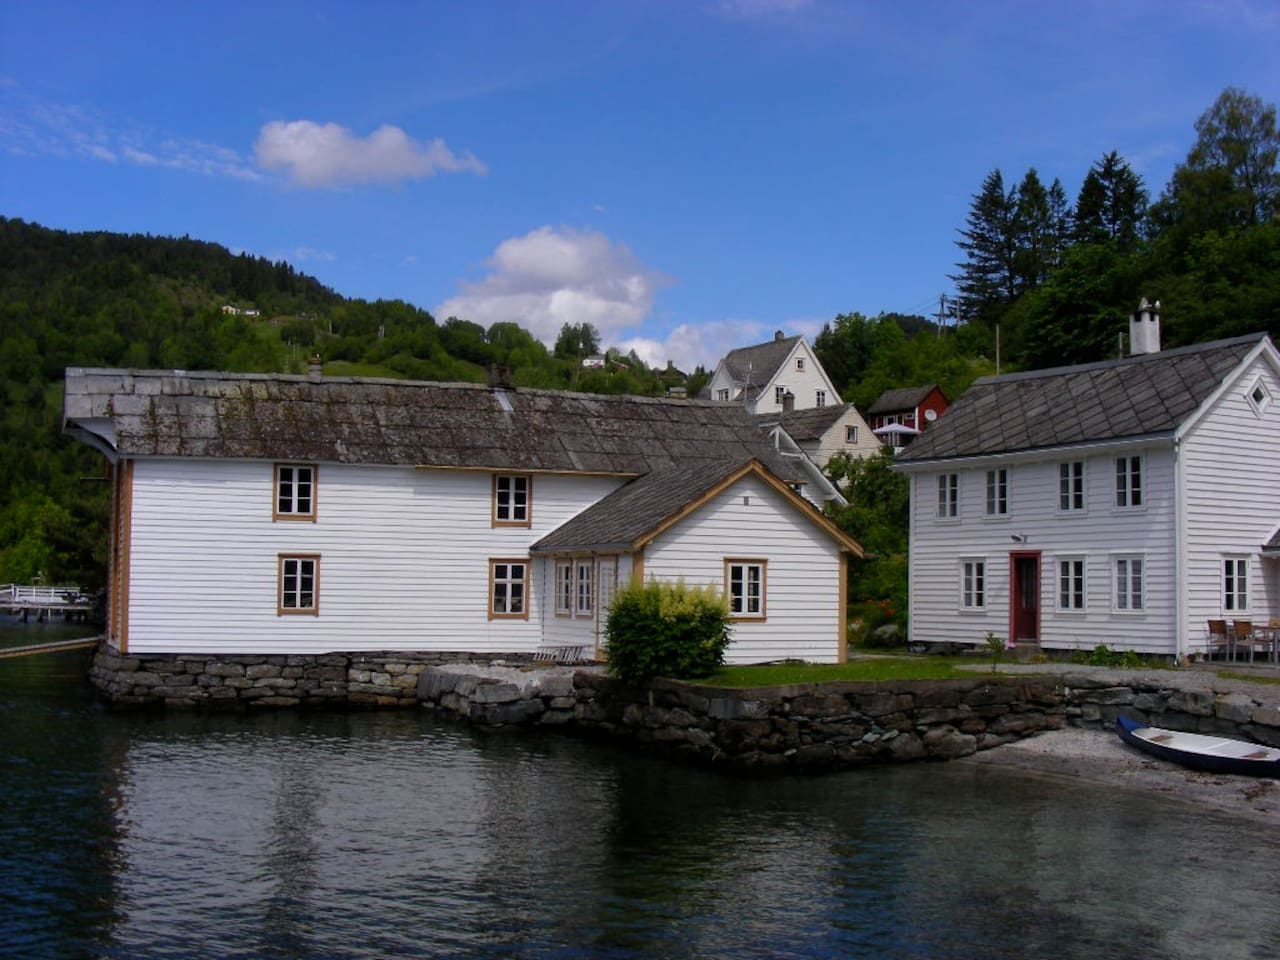 The old trading place by the fjord. The beach house to the right.